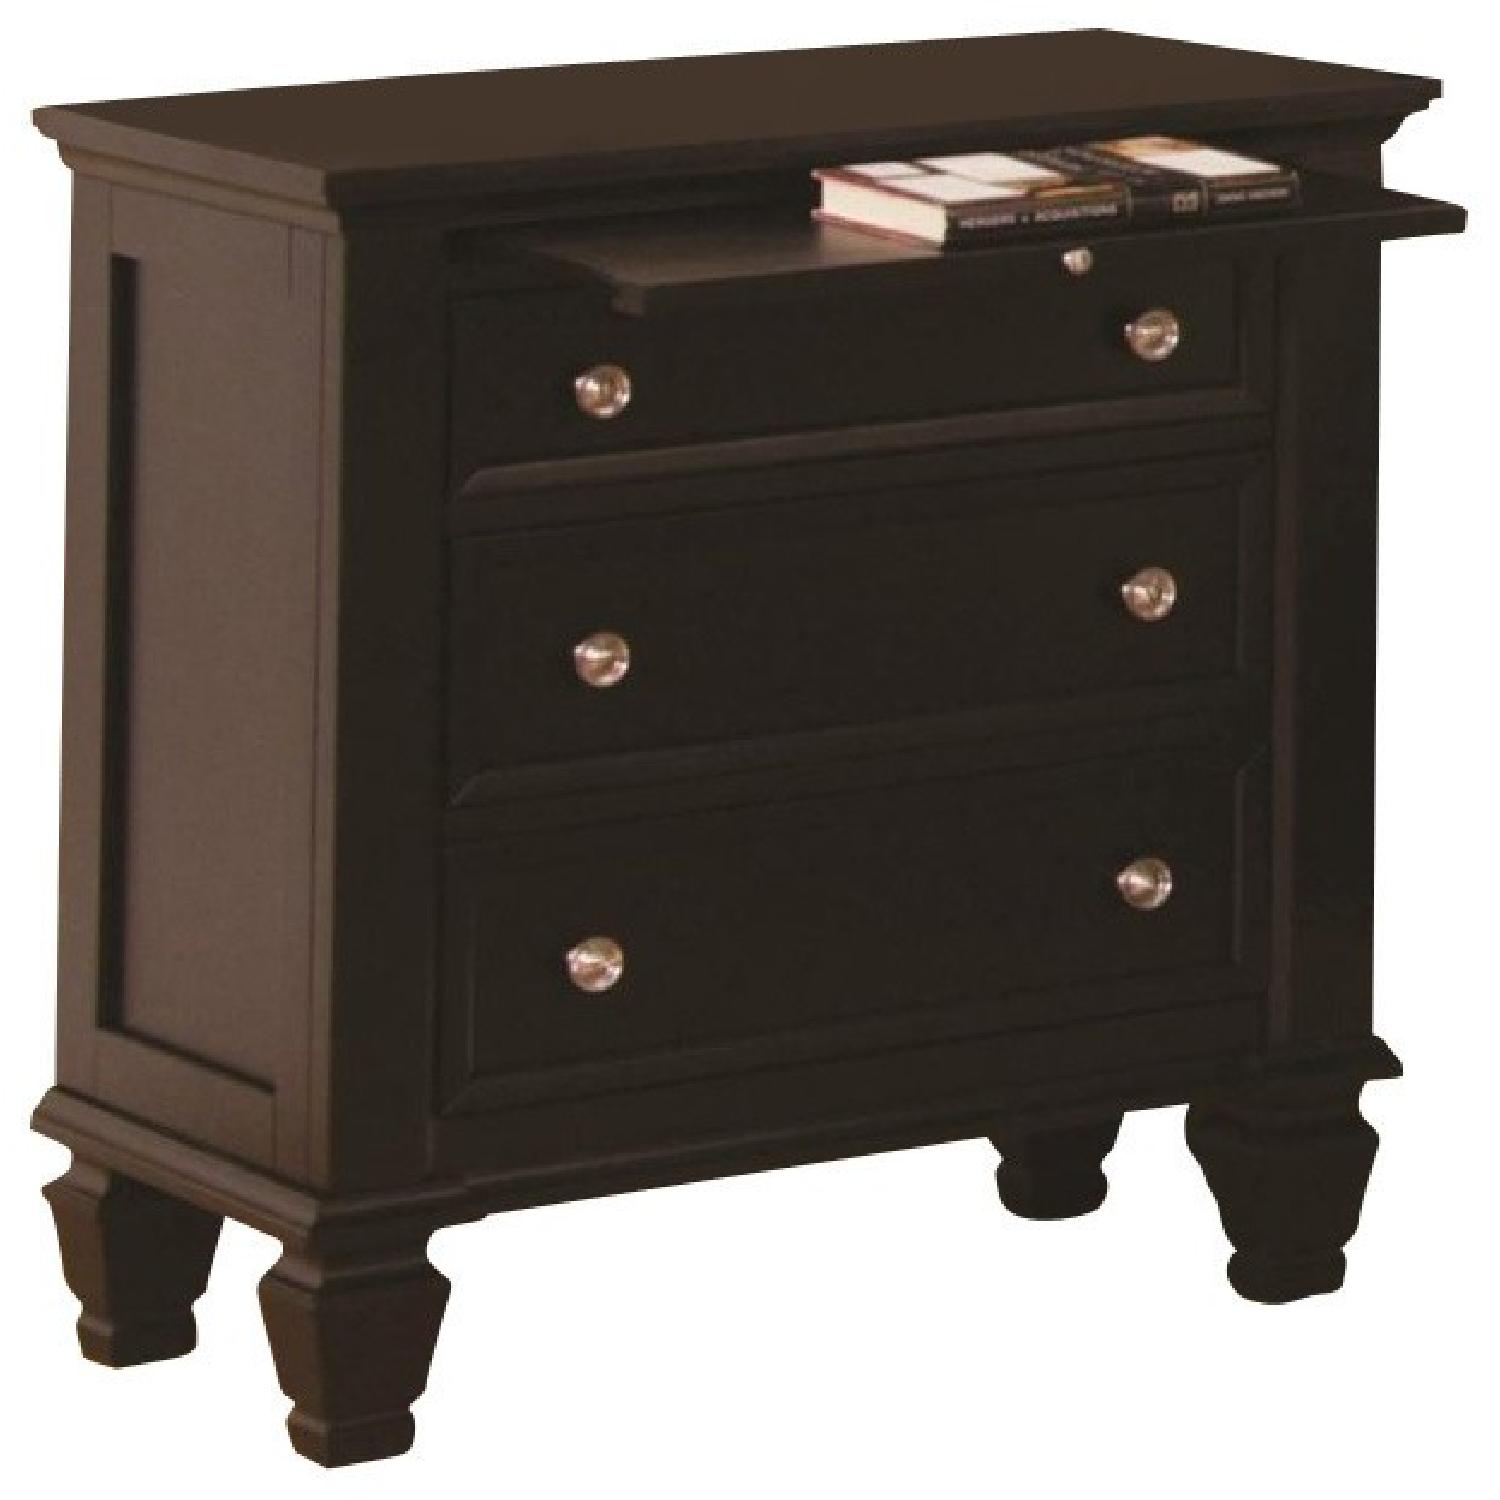 3-Drawer Nightstand w/ Pull-Out Tray in Cappuccino Finish